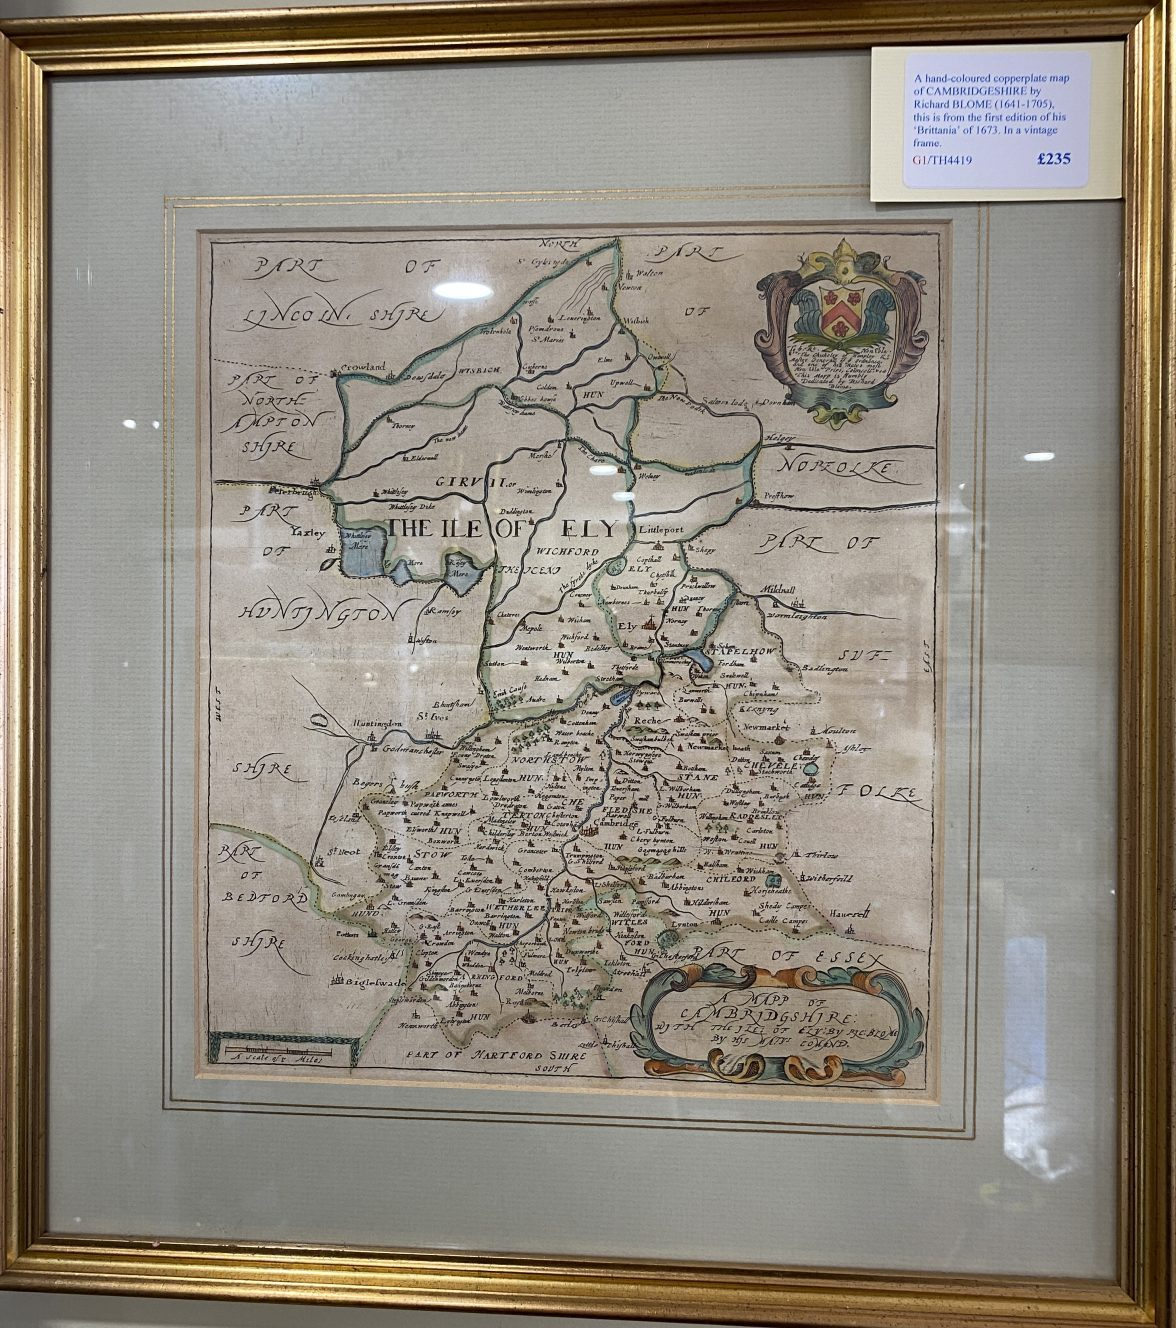 G1 - A hand-coloured copperplate map of CAMBRIDGESHIRE by Richard Blome (1641-1705) from his Britannia of 1673. In a vintage frame.  £235